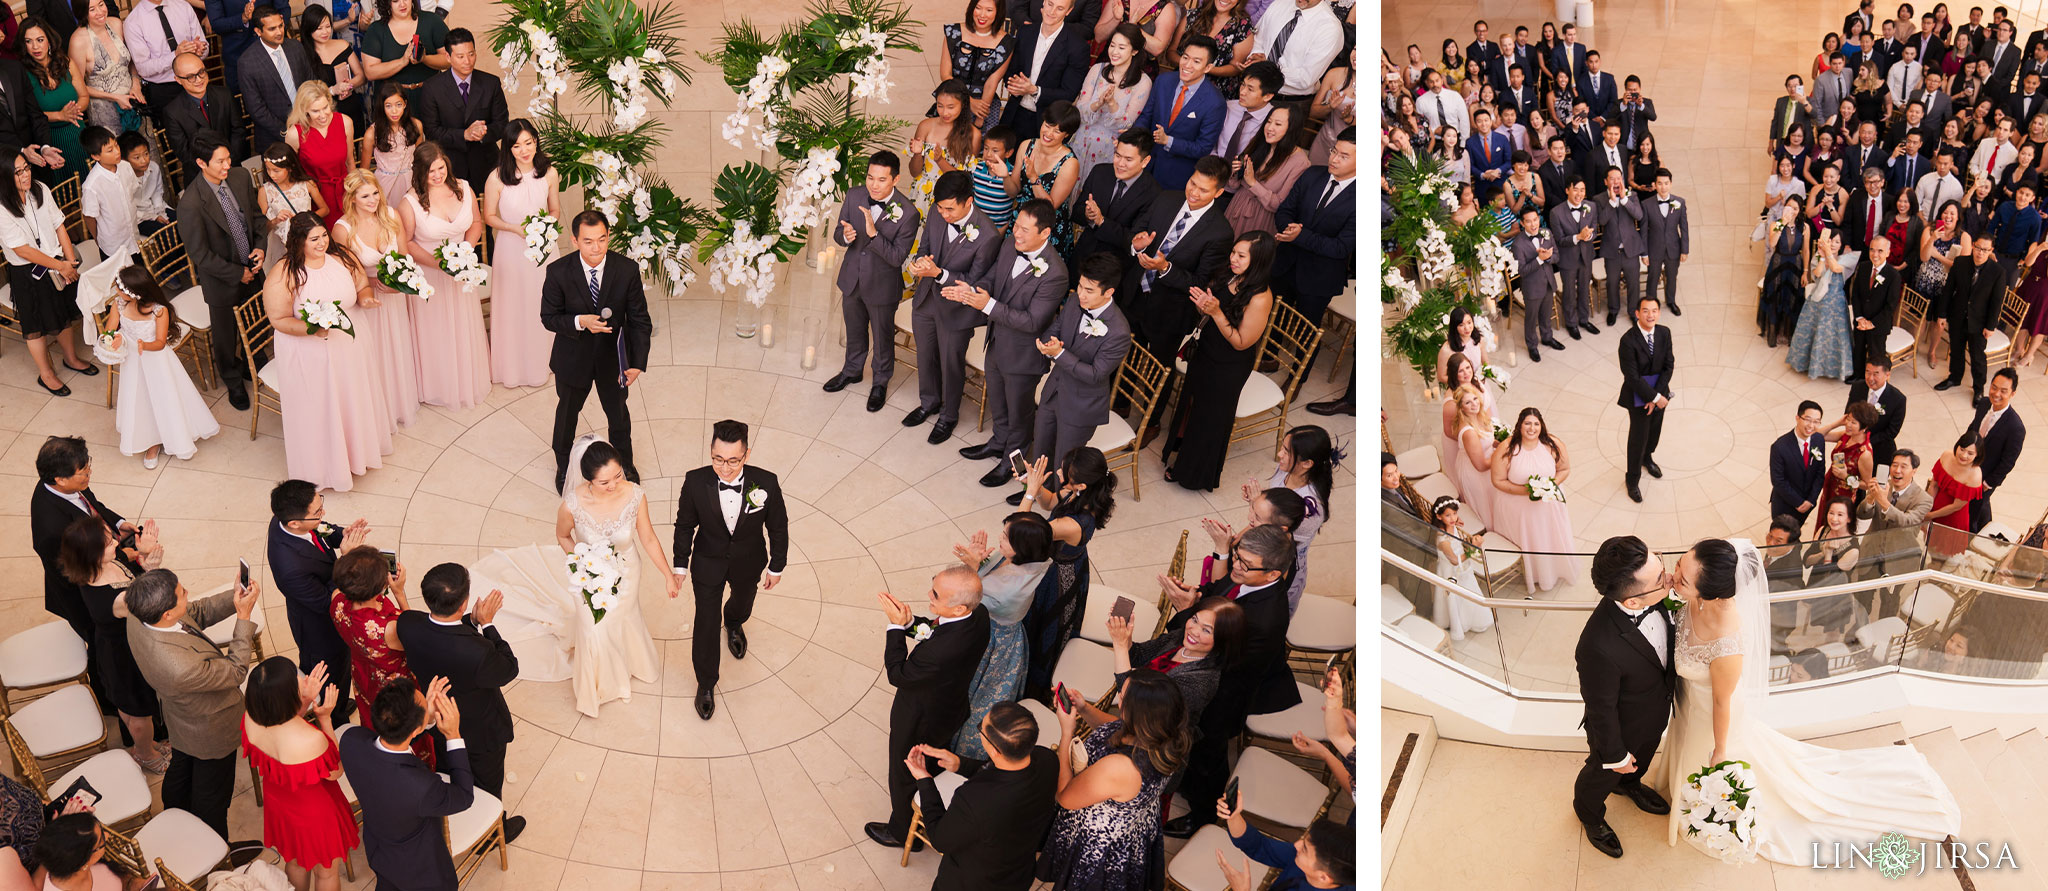 28 segerstrom center for the arts costa mesa wedding photography